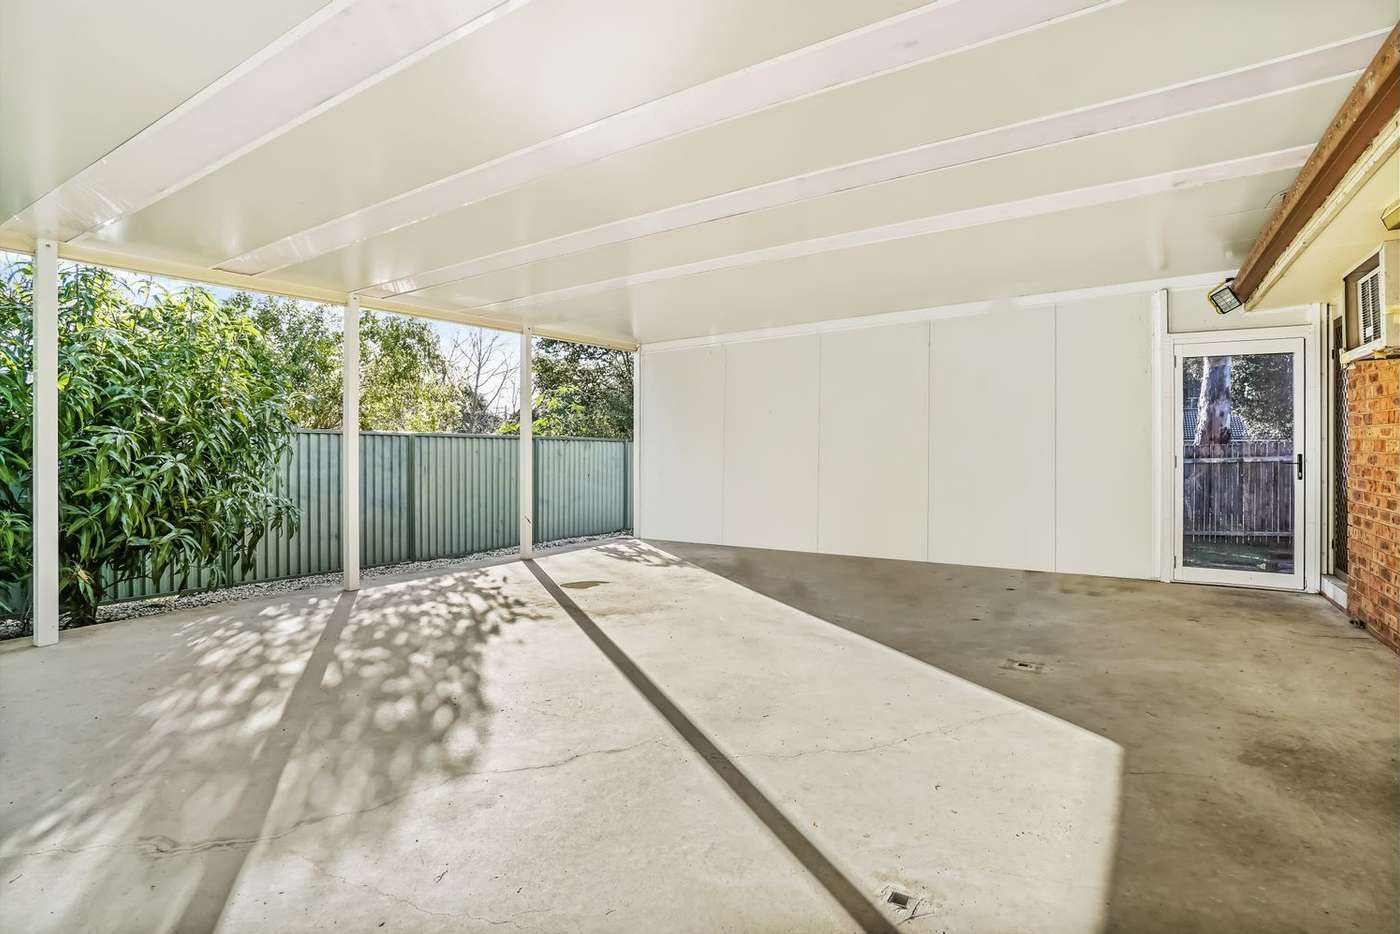 Seventh view of Homely house listing, 24A Lamonerie Street, Toongabbie NSW 2146